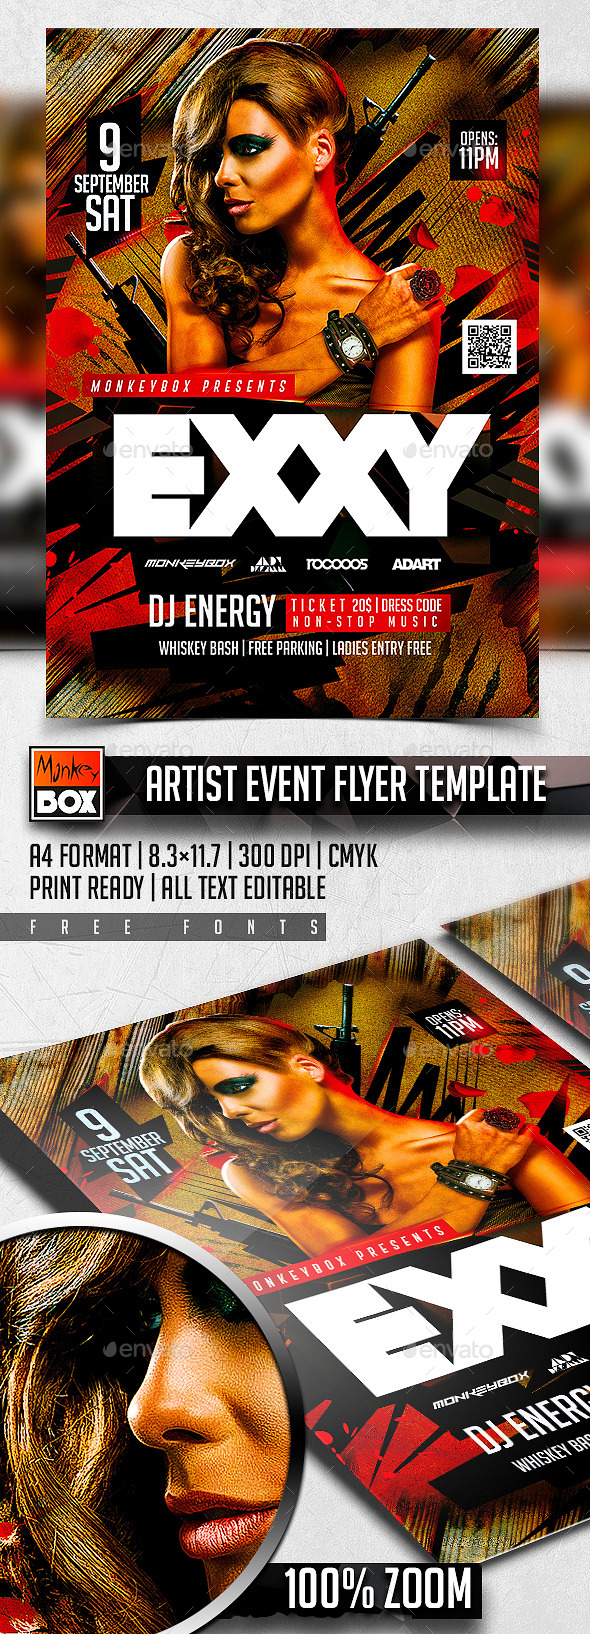 Artist Event Flyer Template - Clubs & Parties Events